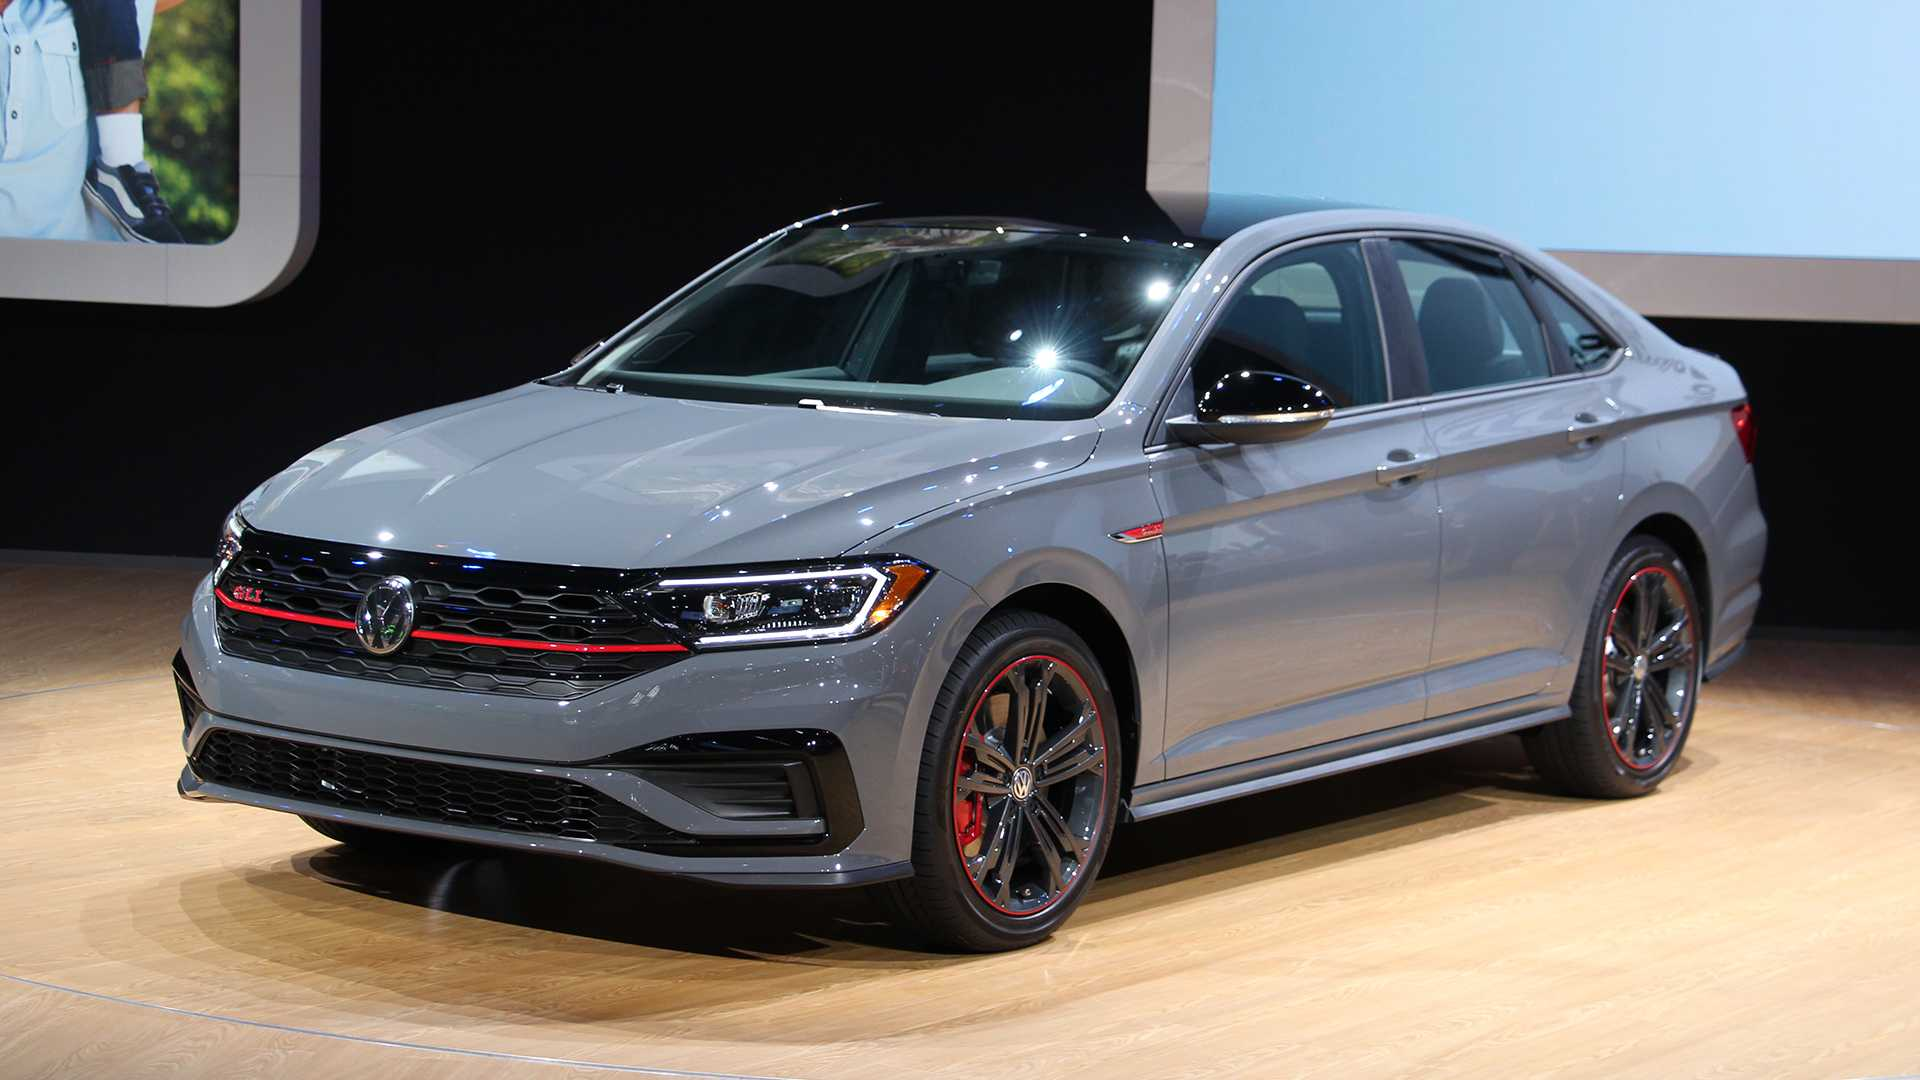 82 Concept of Vw Gli 2019 Images with Vw Gli 2019